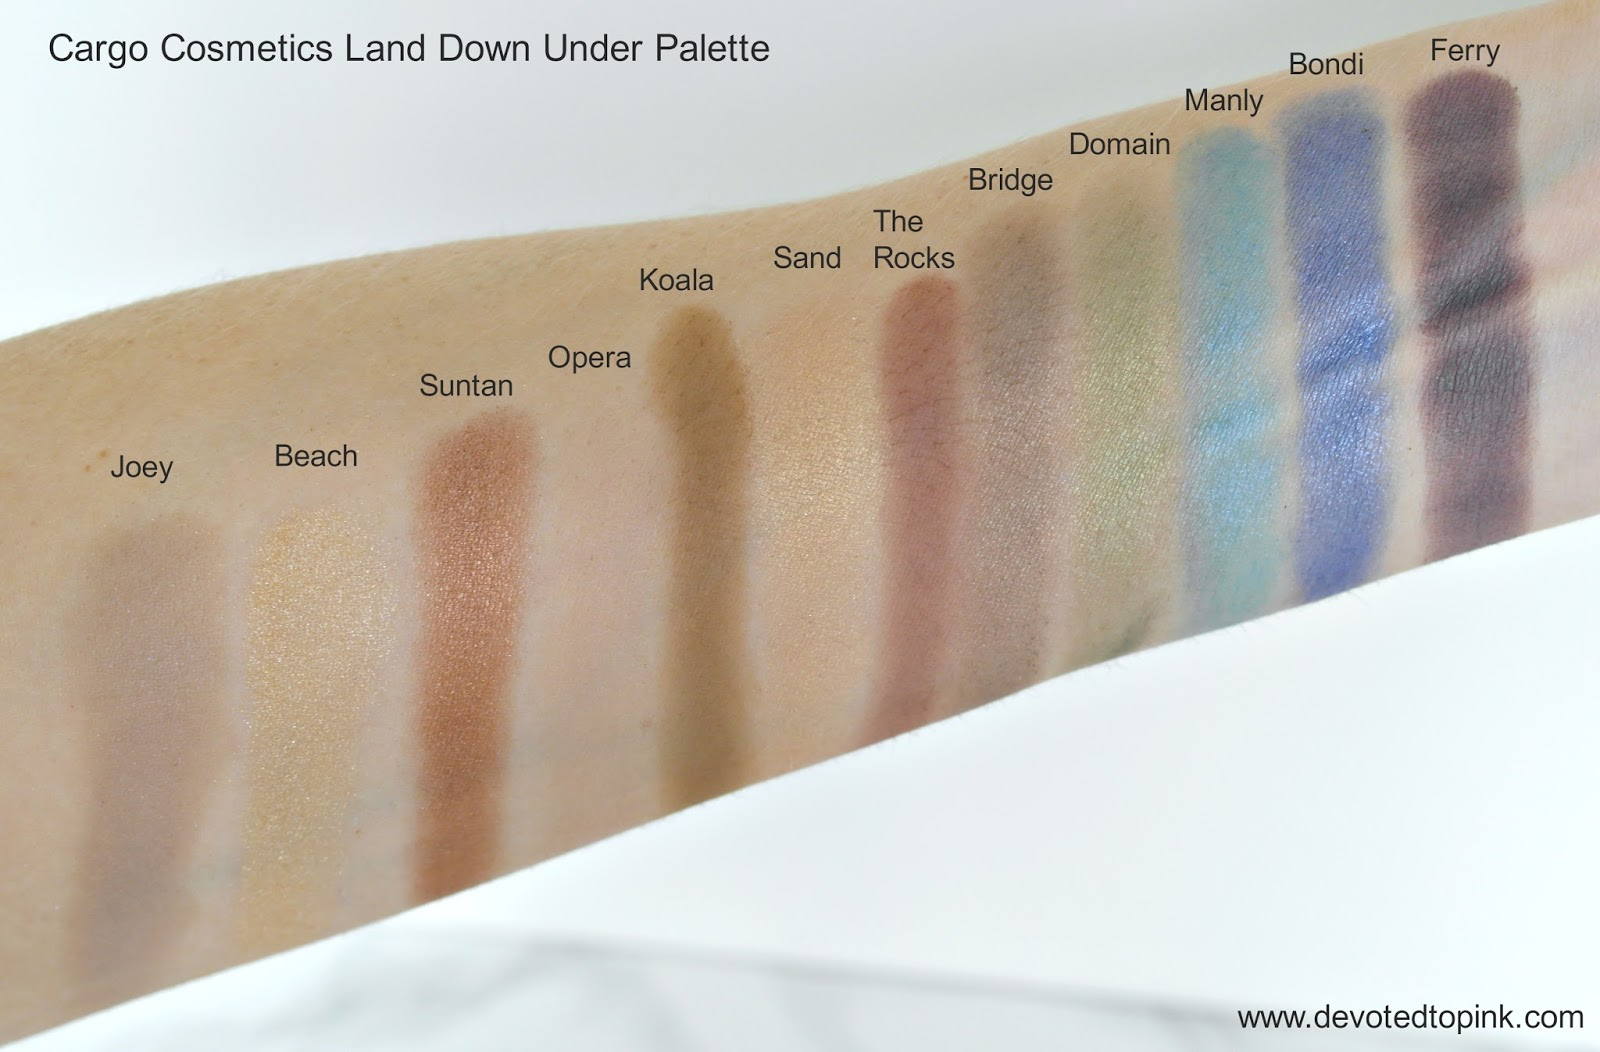 Cargo Cosmetics land down under palette, swatches, review